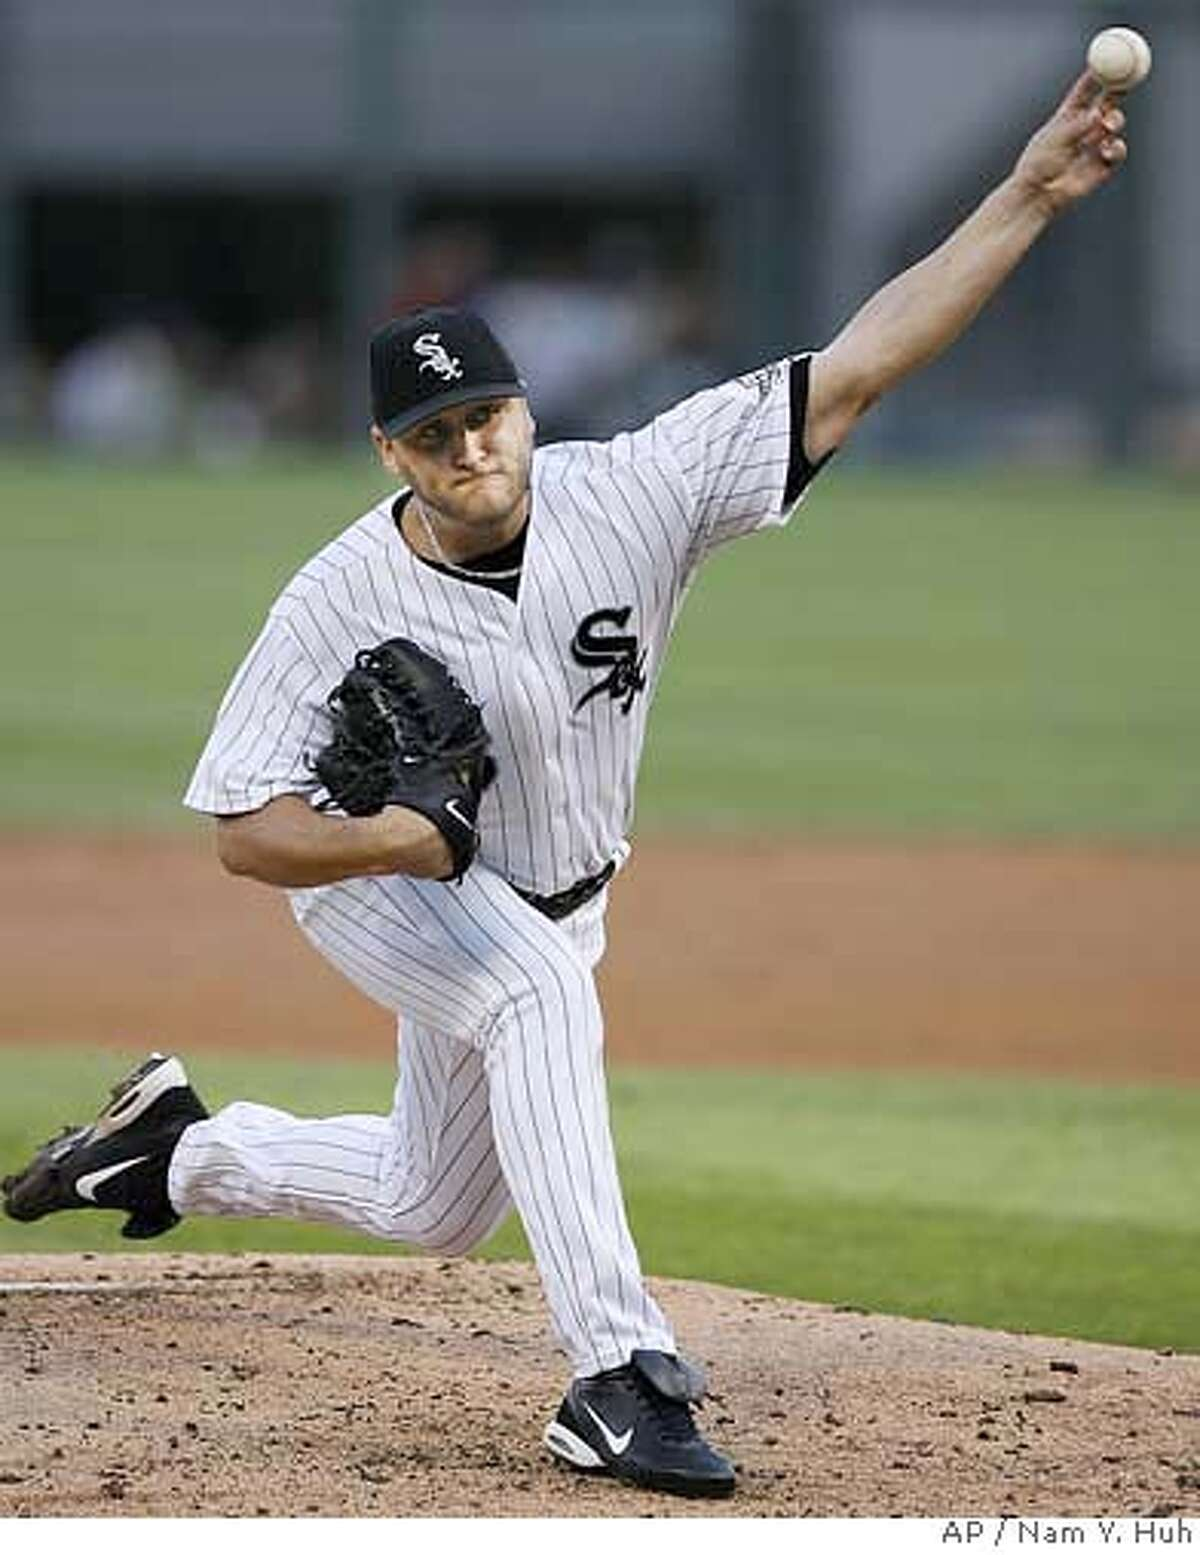 Chicago White Sox starting pitcher Mark Buehrle delivers to Los Angeles Angels during the second inning of a baseball game at U.S. Cellular Field, Monday, Aug. 7, 2006 in Chicago.(AP Photo/Nam Y. Huh)